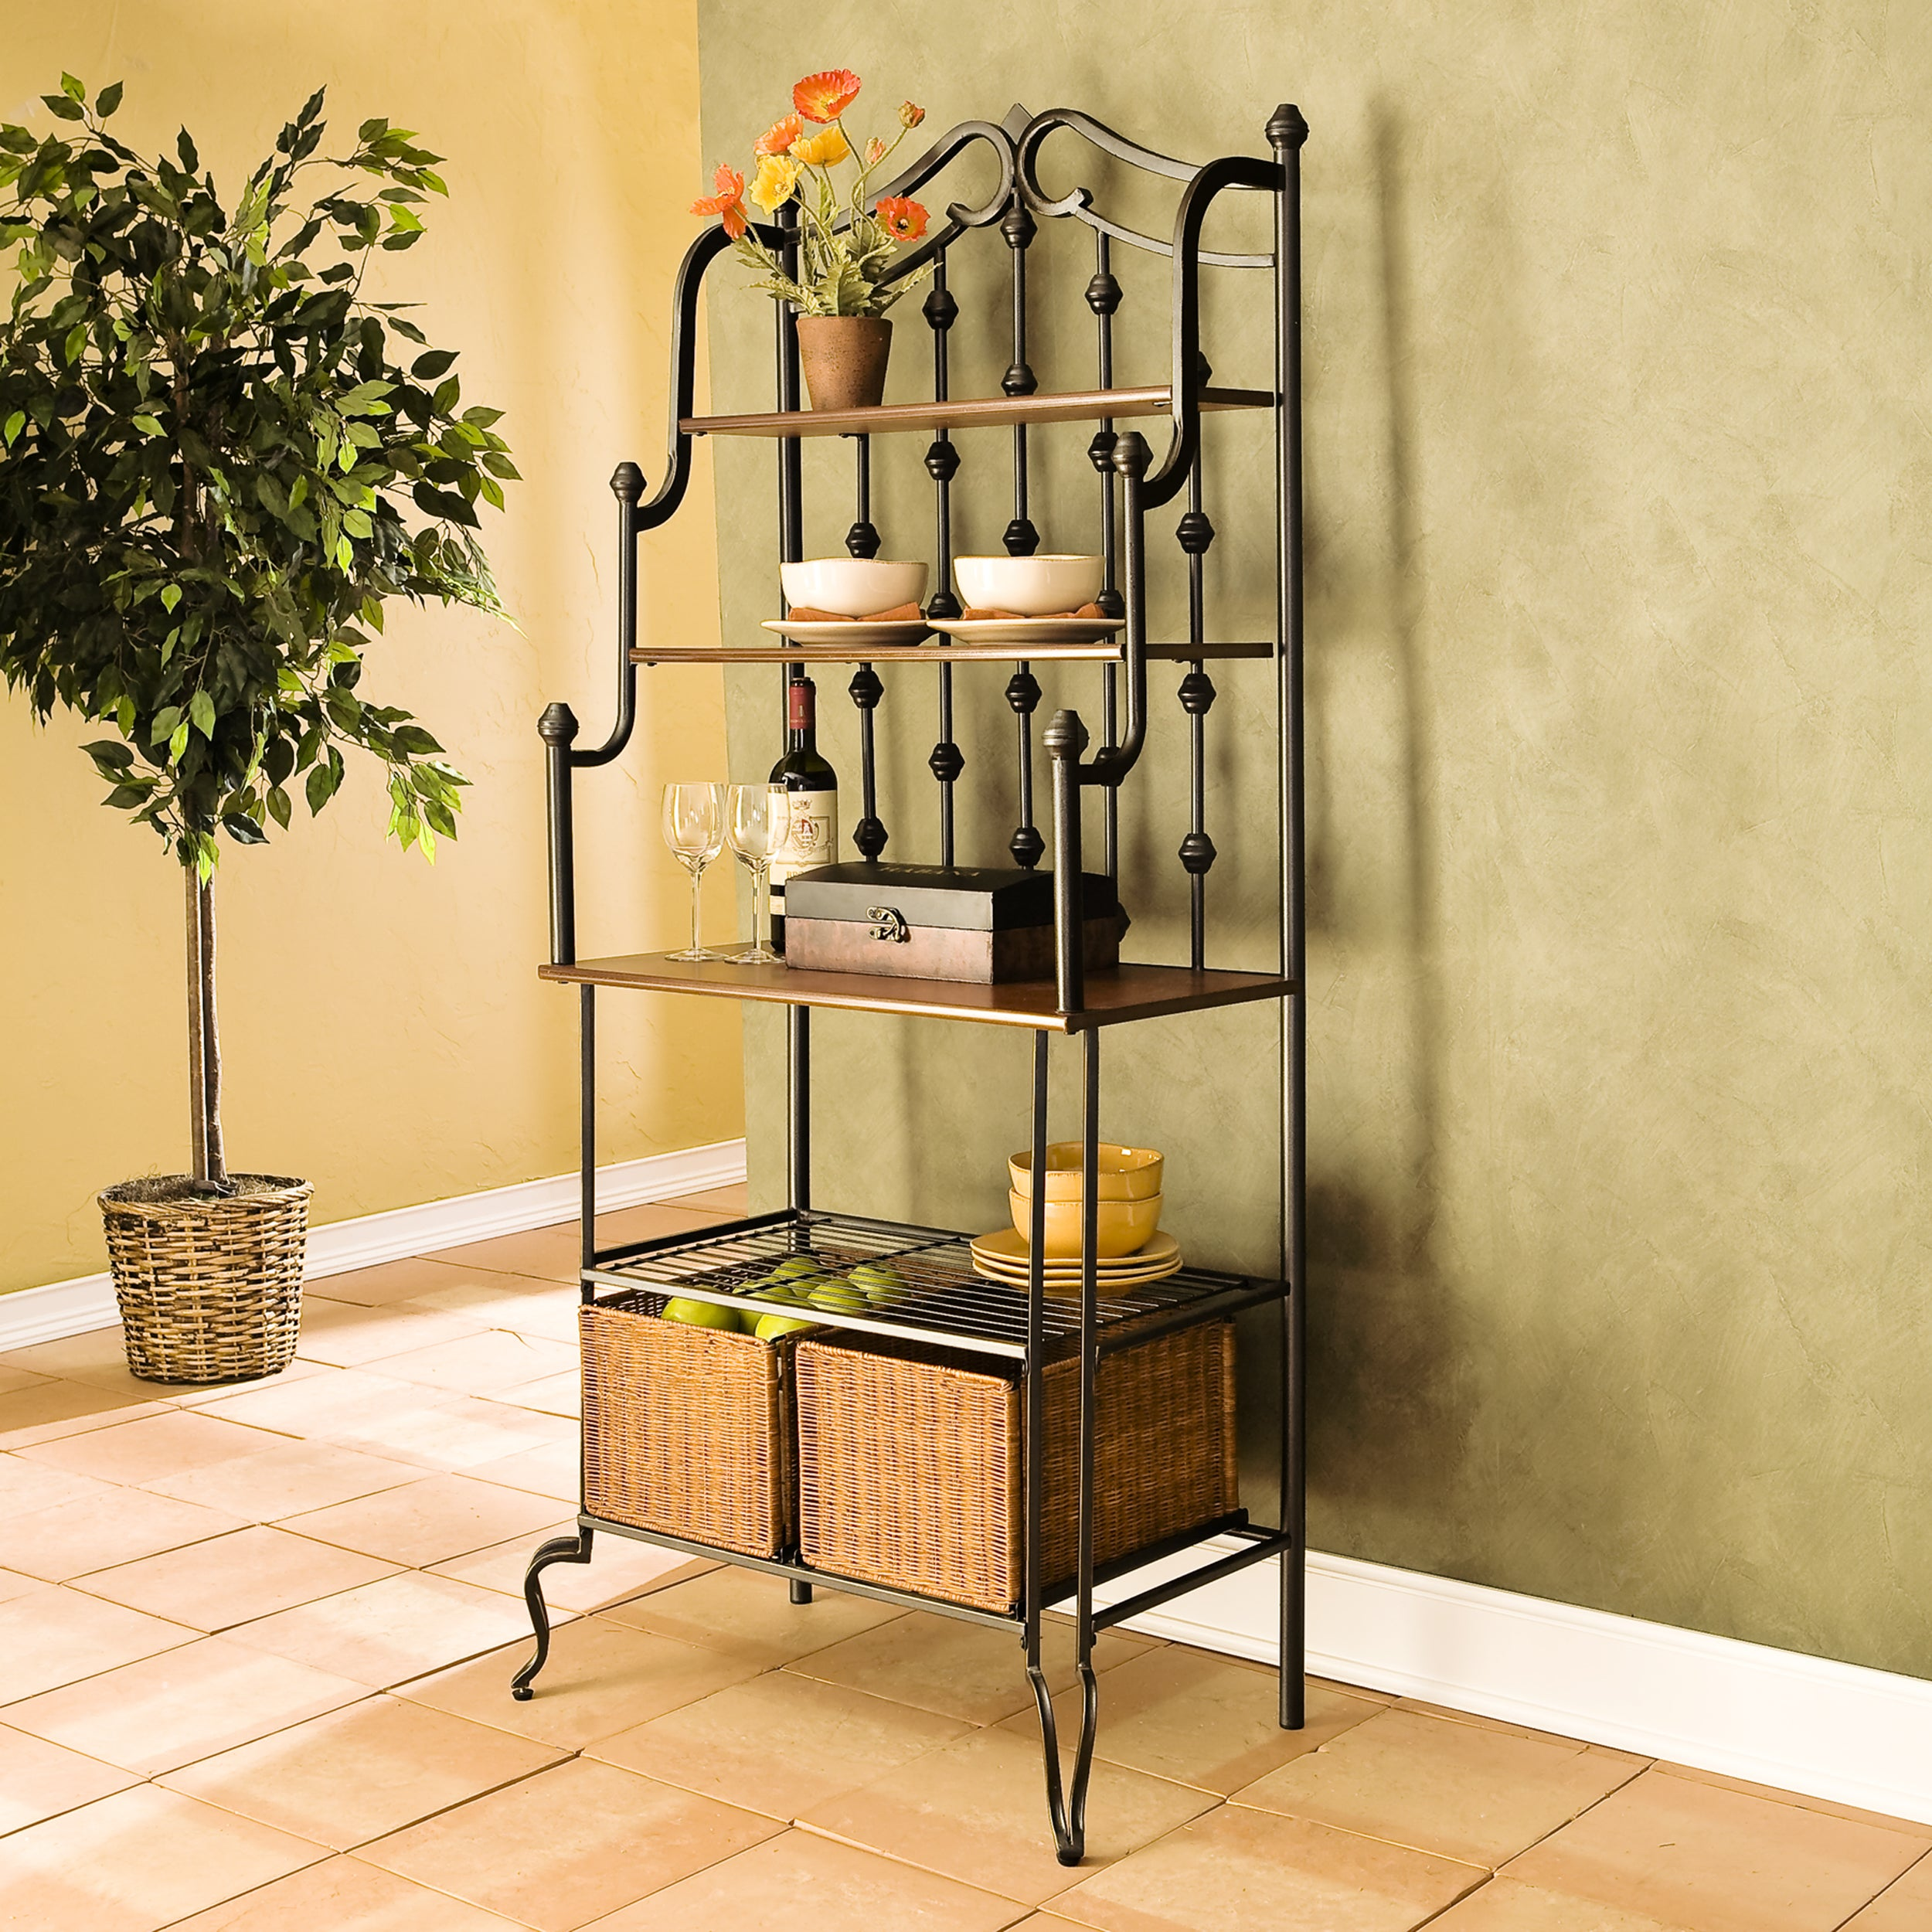 Harper Blvd Augusta Black Baker's Rack with Brown Shelves